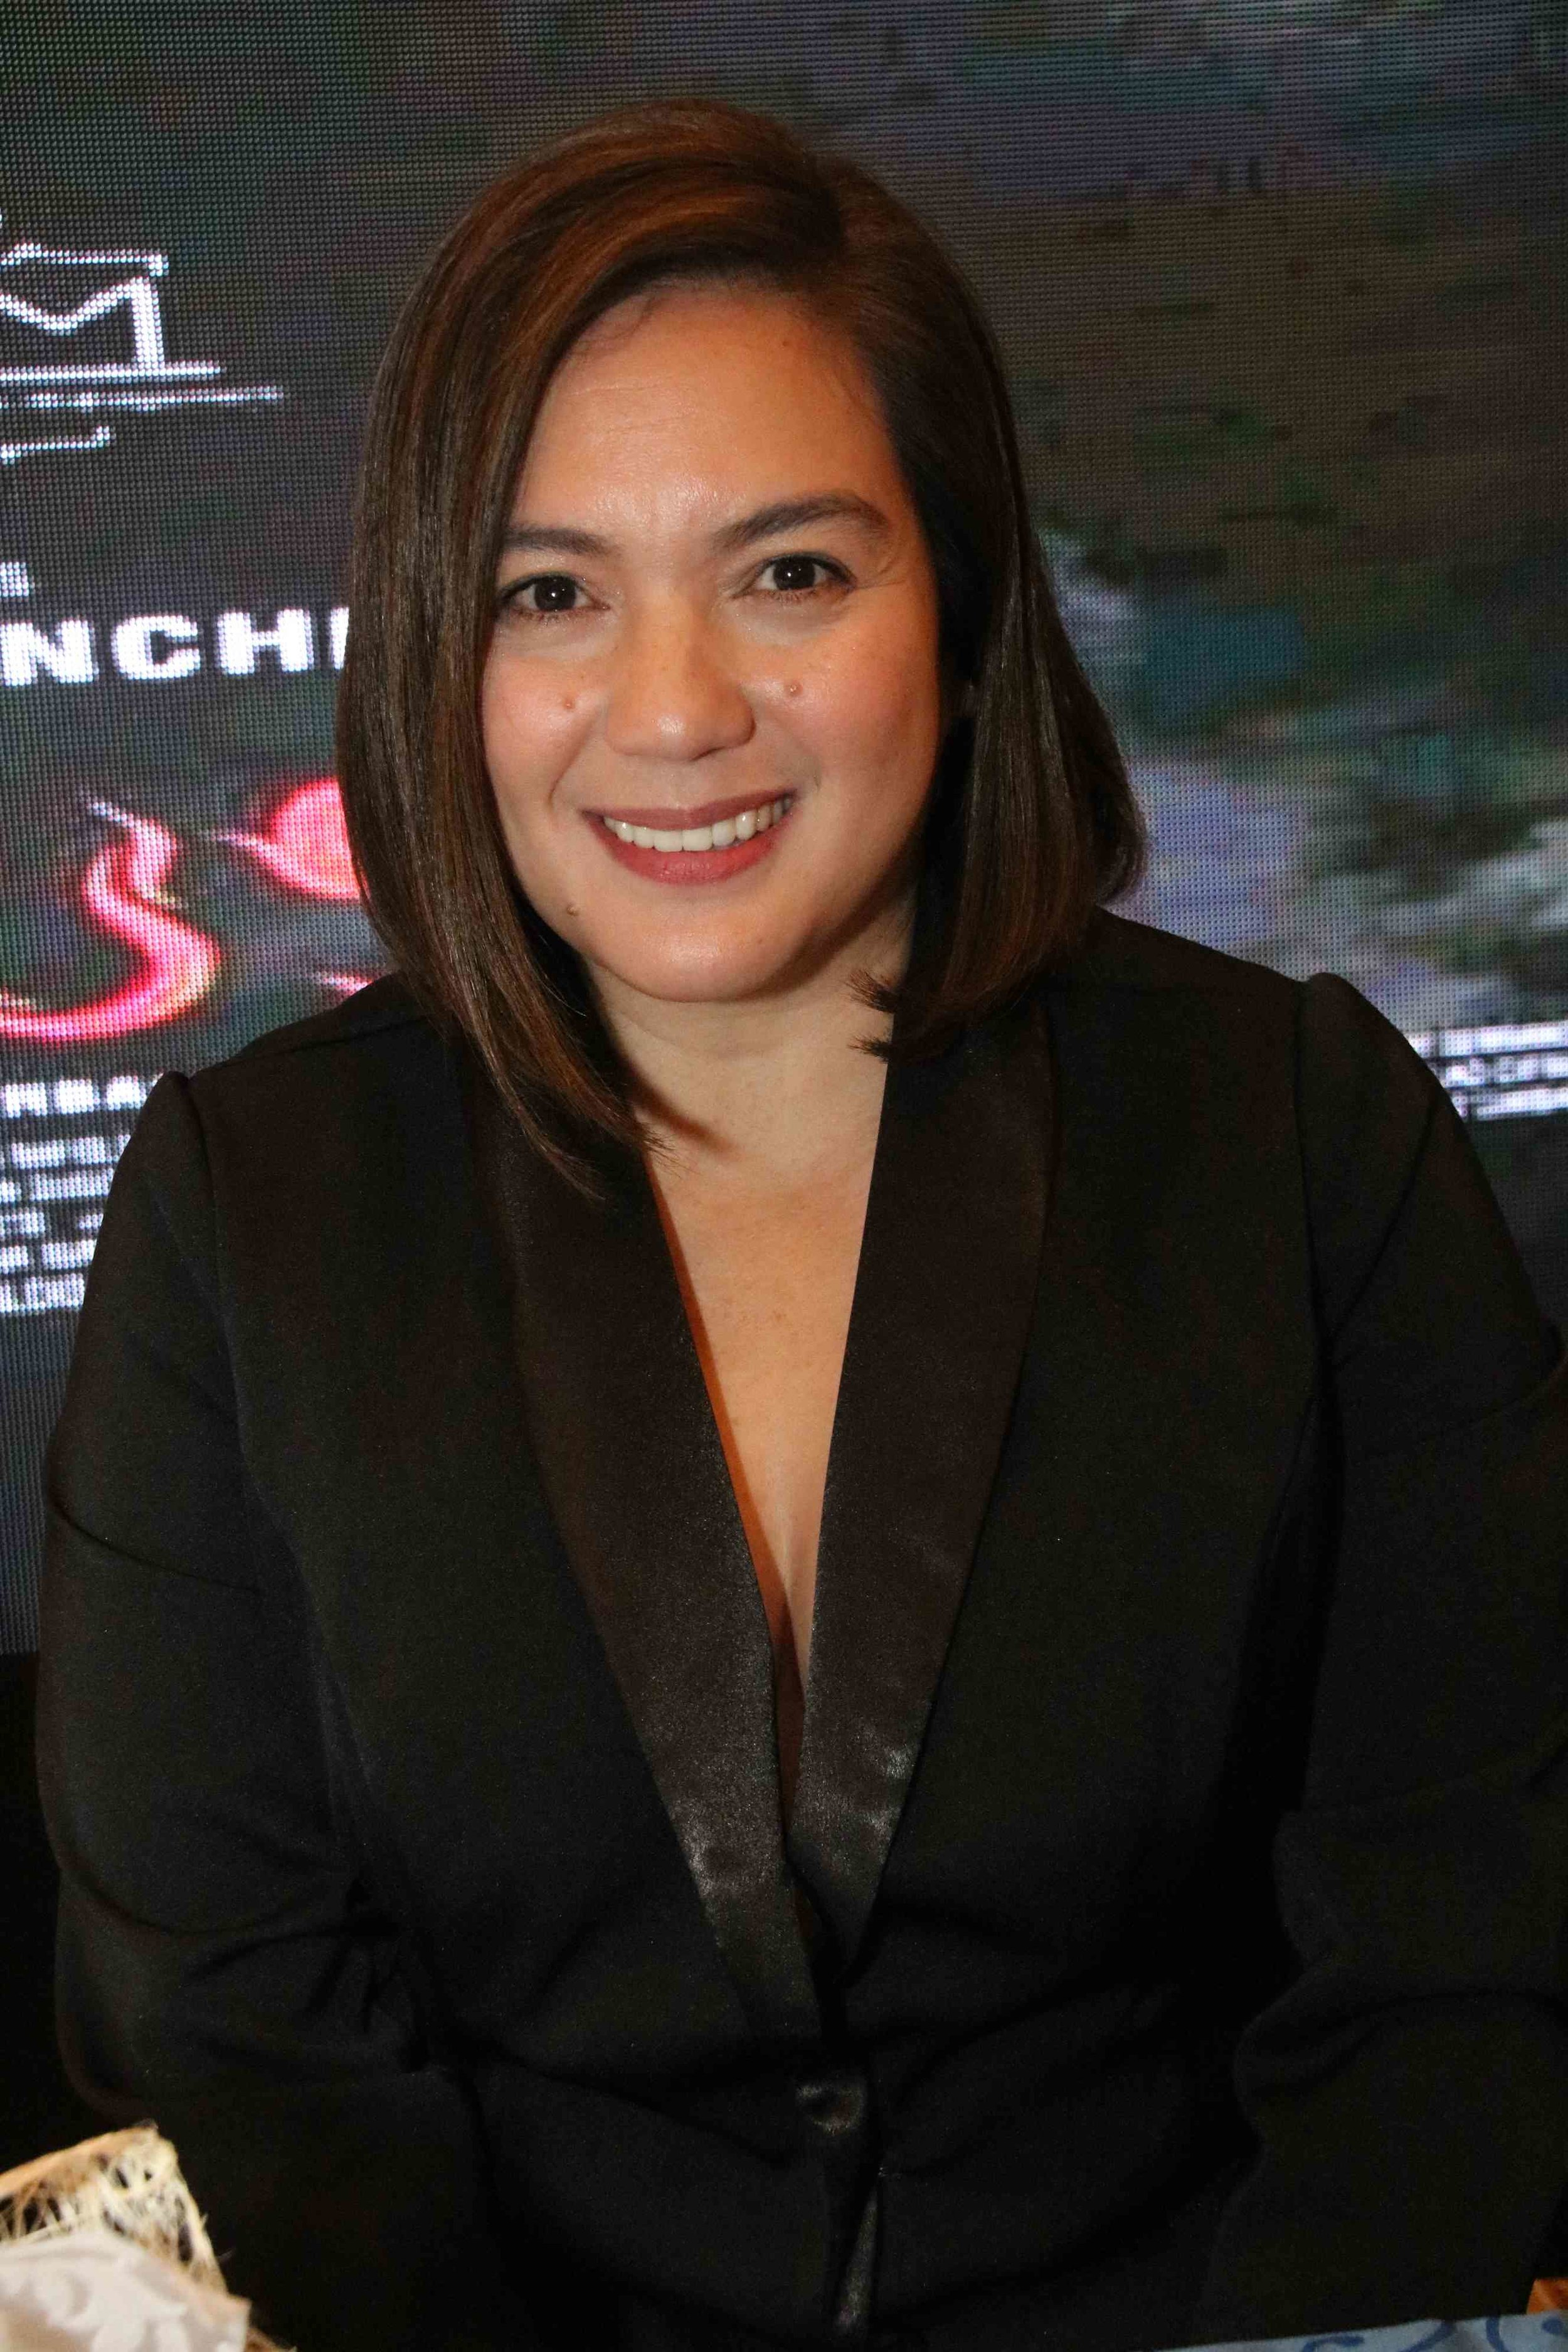 Sylvia Sanchez plays Jesusa, a role first offered to Nora Aunor